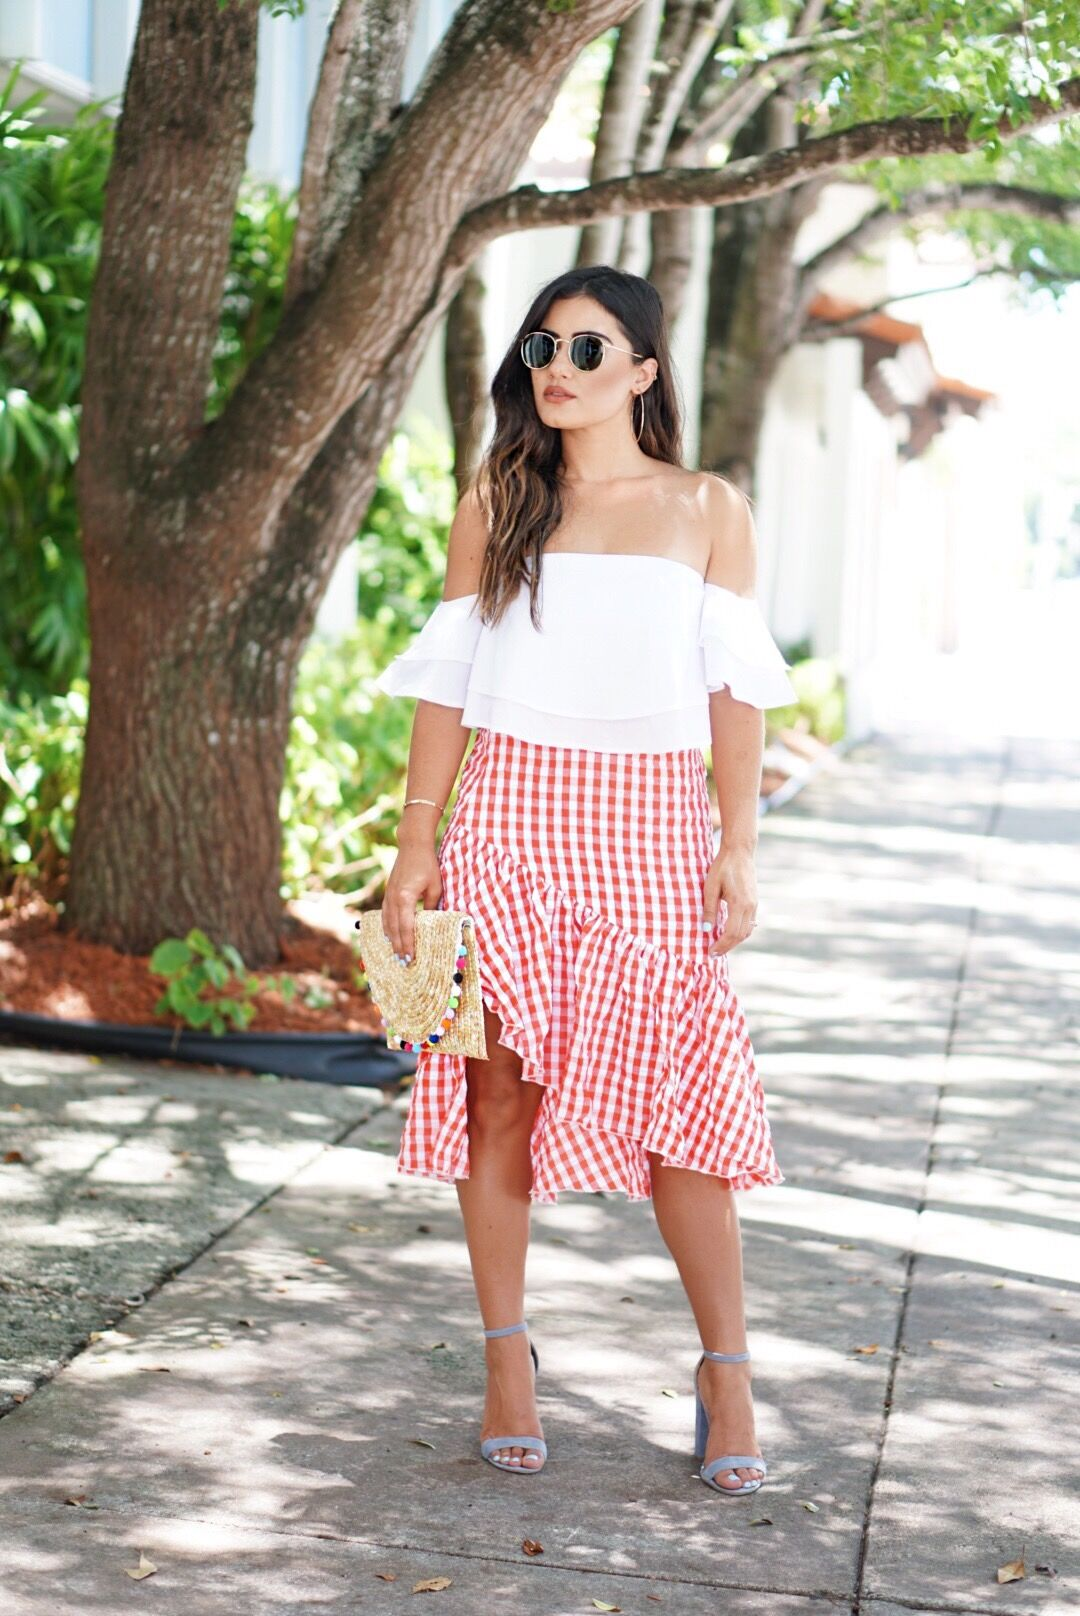 Blogger Krista Perez shares What to wear to Daytime Events